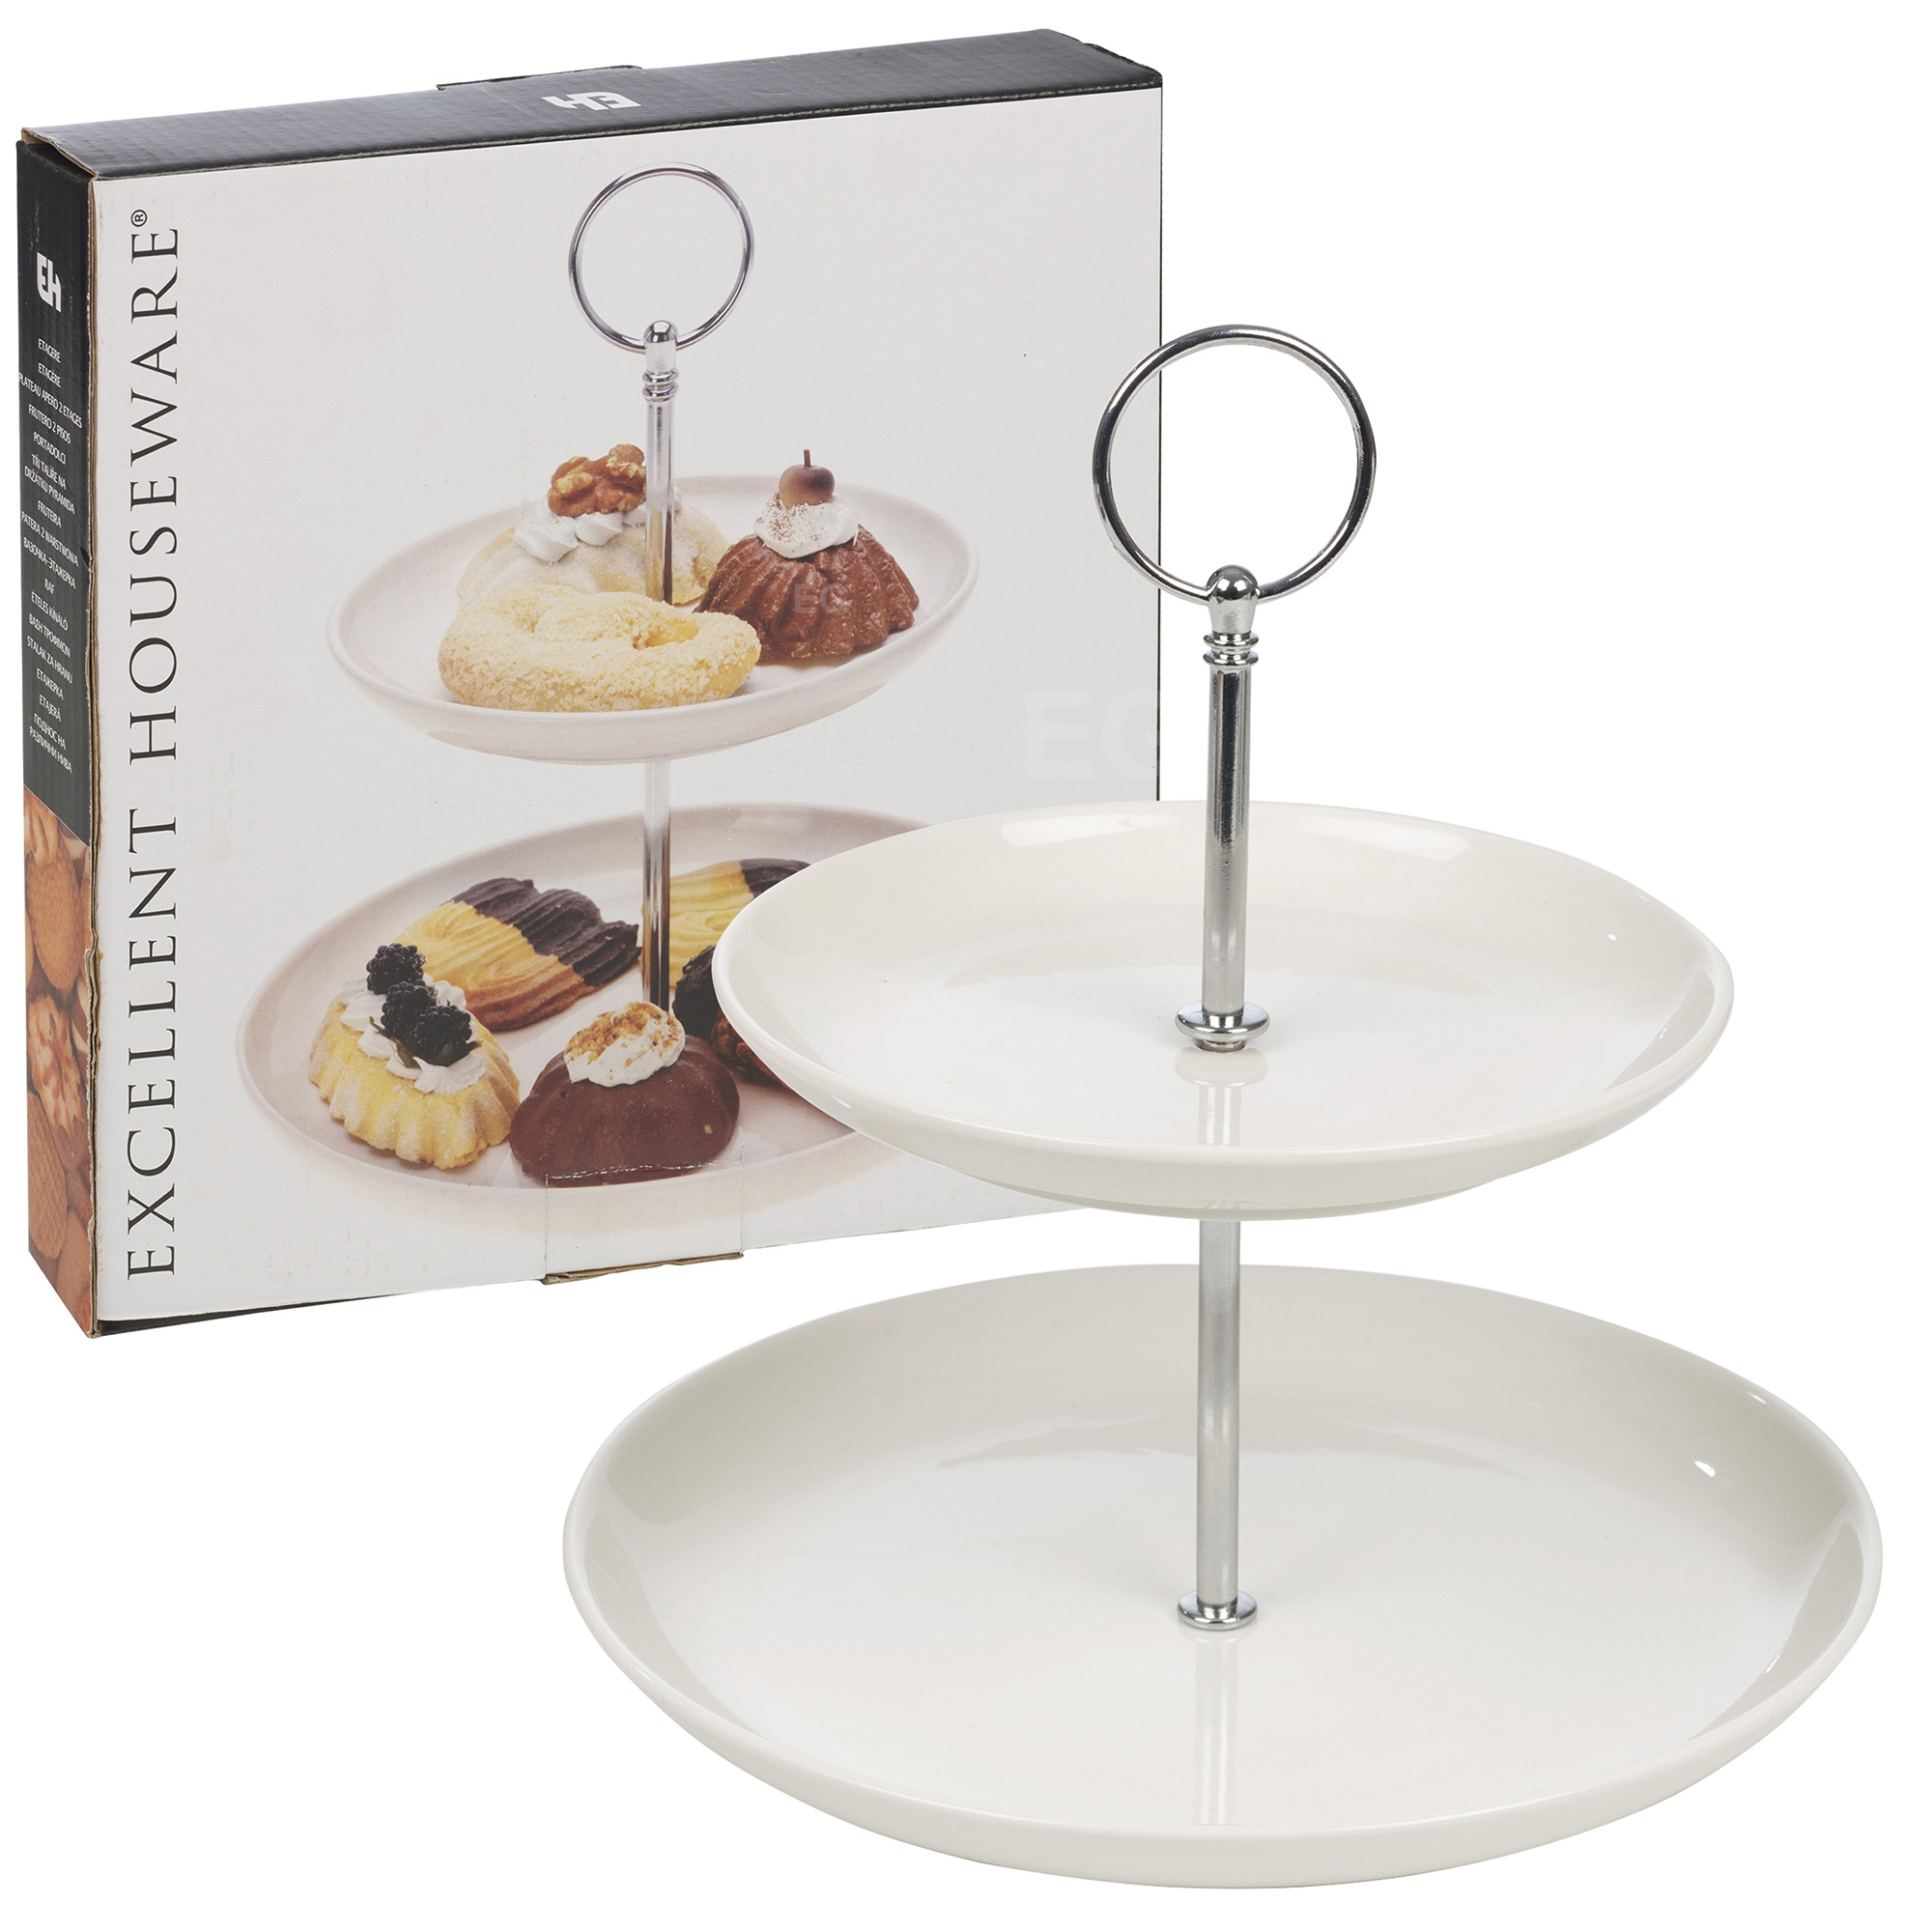 2 layer tier ceramic round serving display cakes platter for Canape display stands